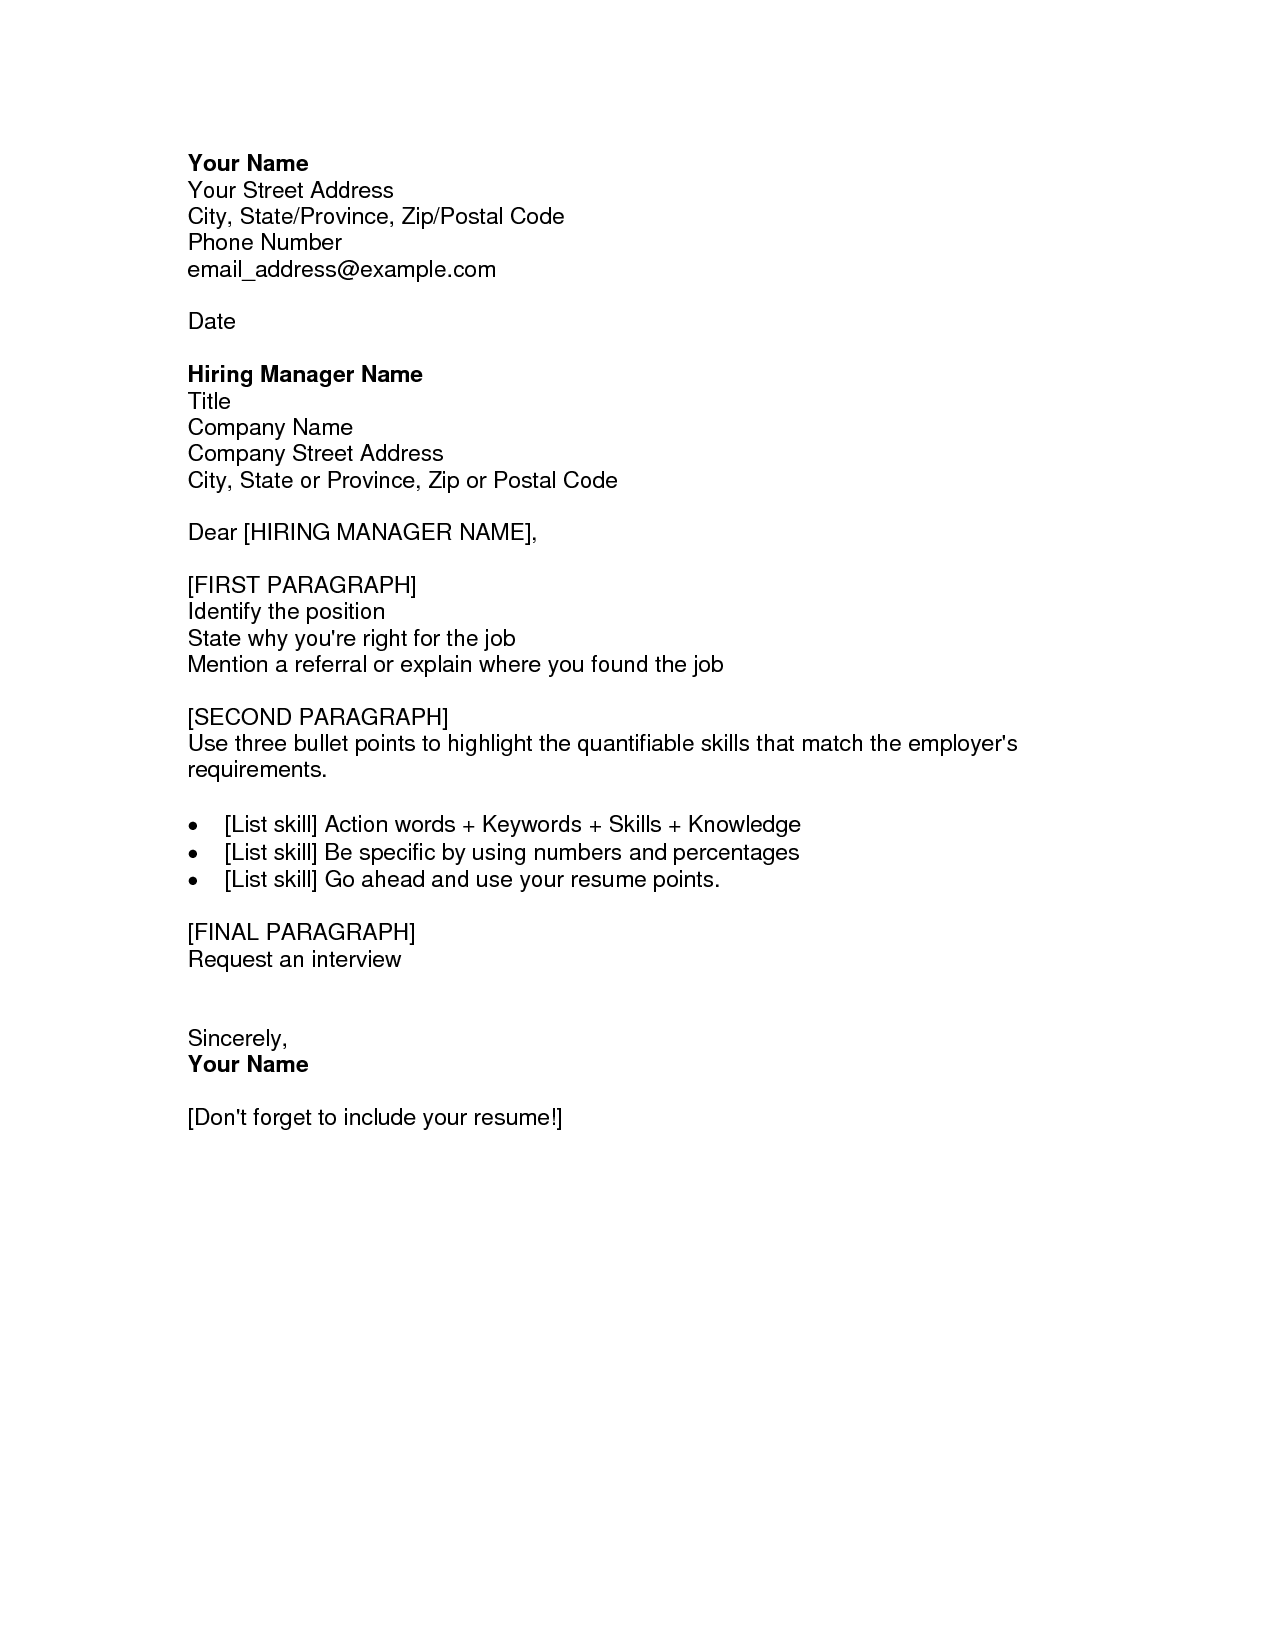 Sample cover letter for Internship position at Procter and Gamble